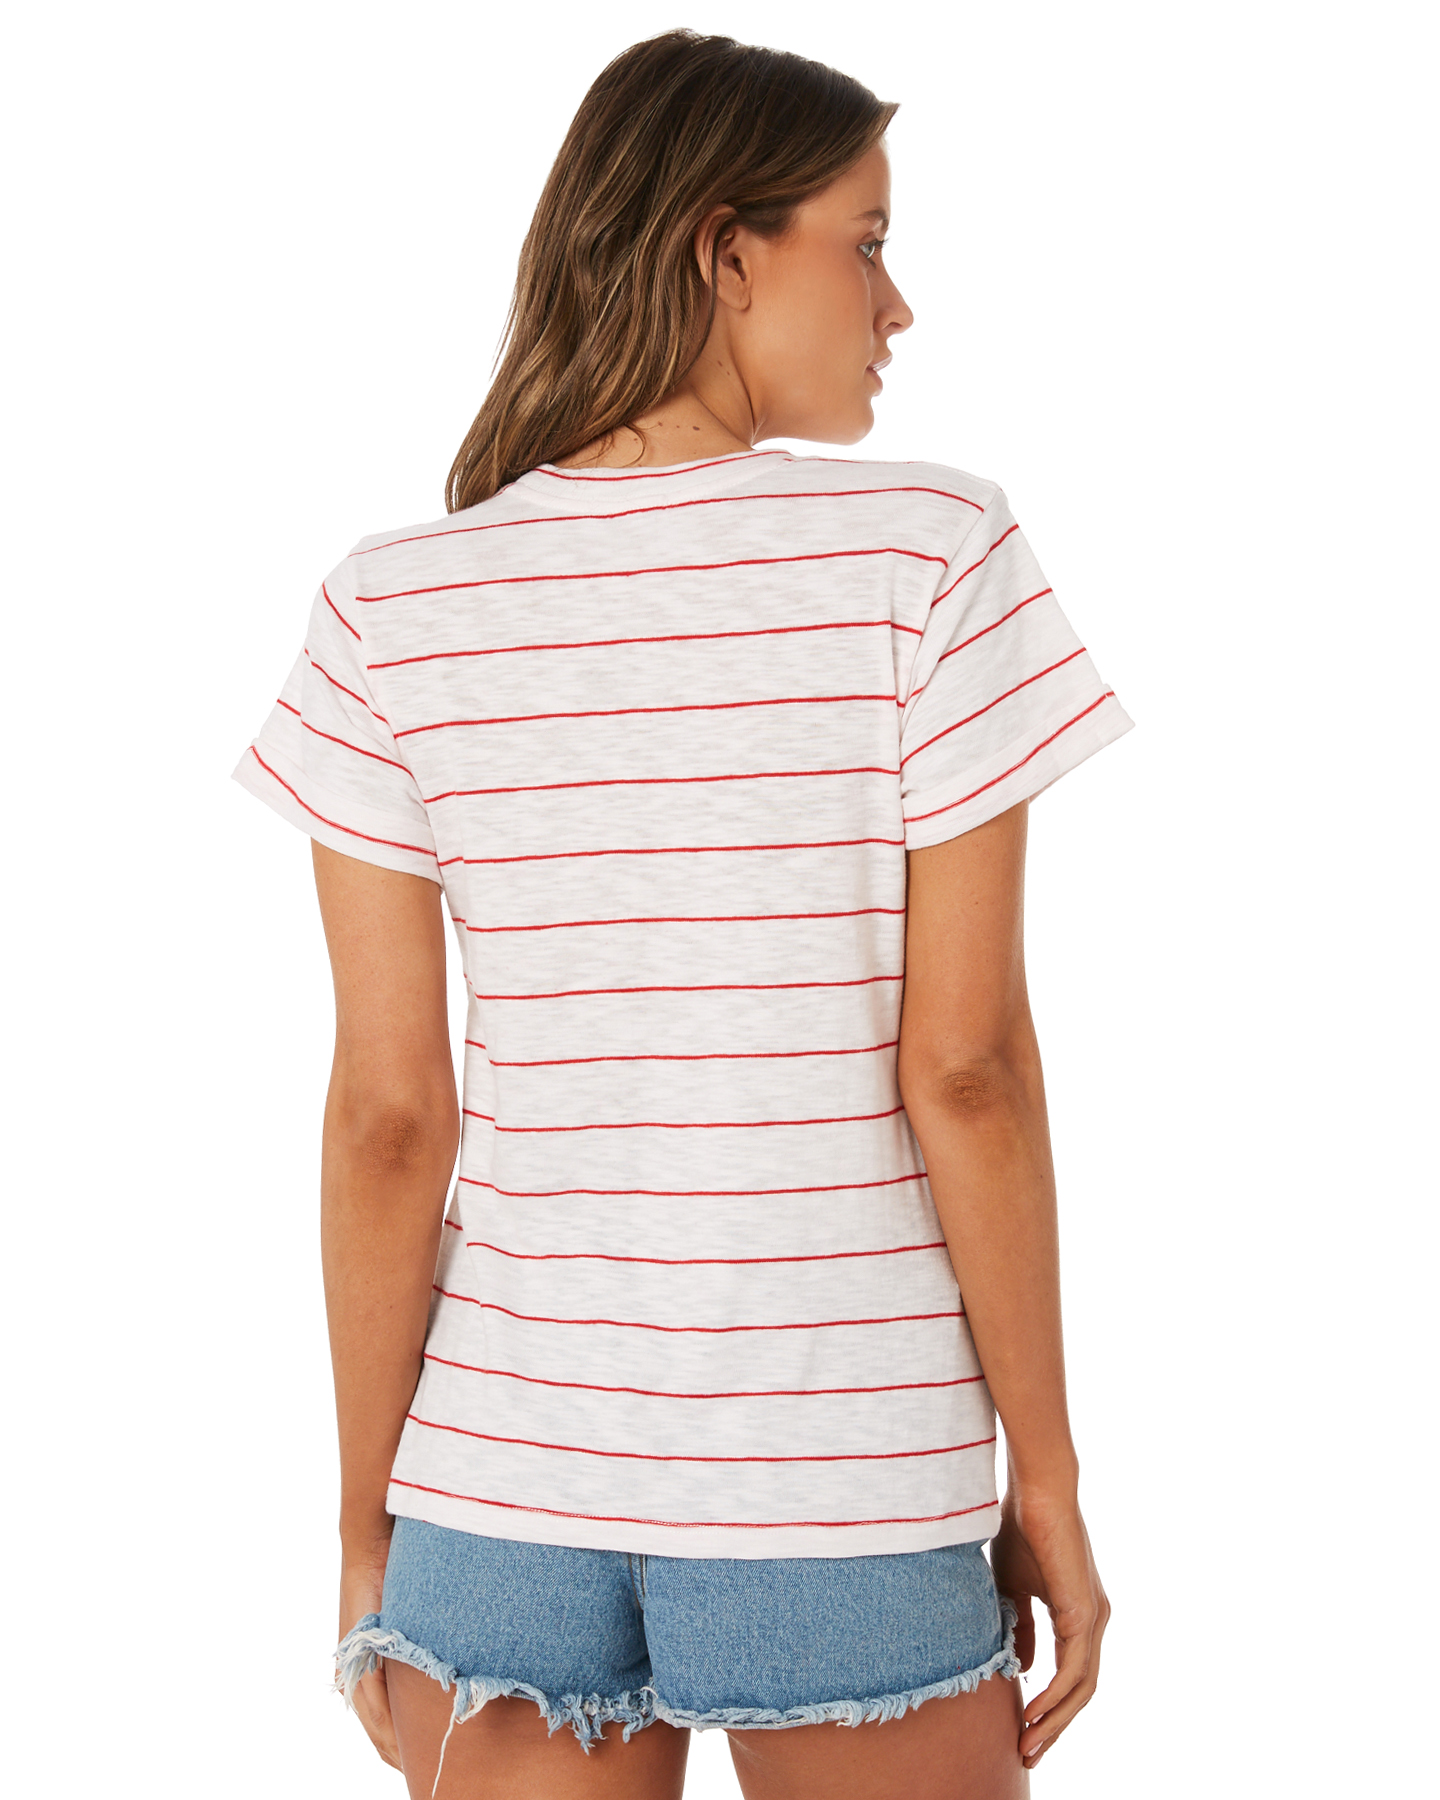 New-Swell-Women-039-s-Ginger-Boyfriend-Tee-Crew-Neck-Short-Sleeve-Cotton-Red thumbnail 13